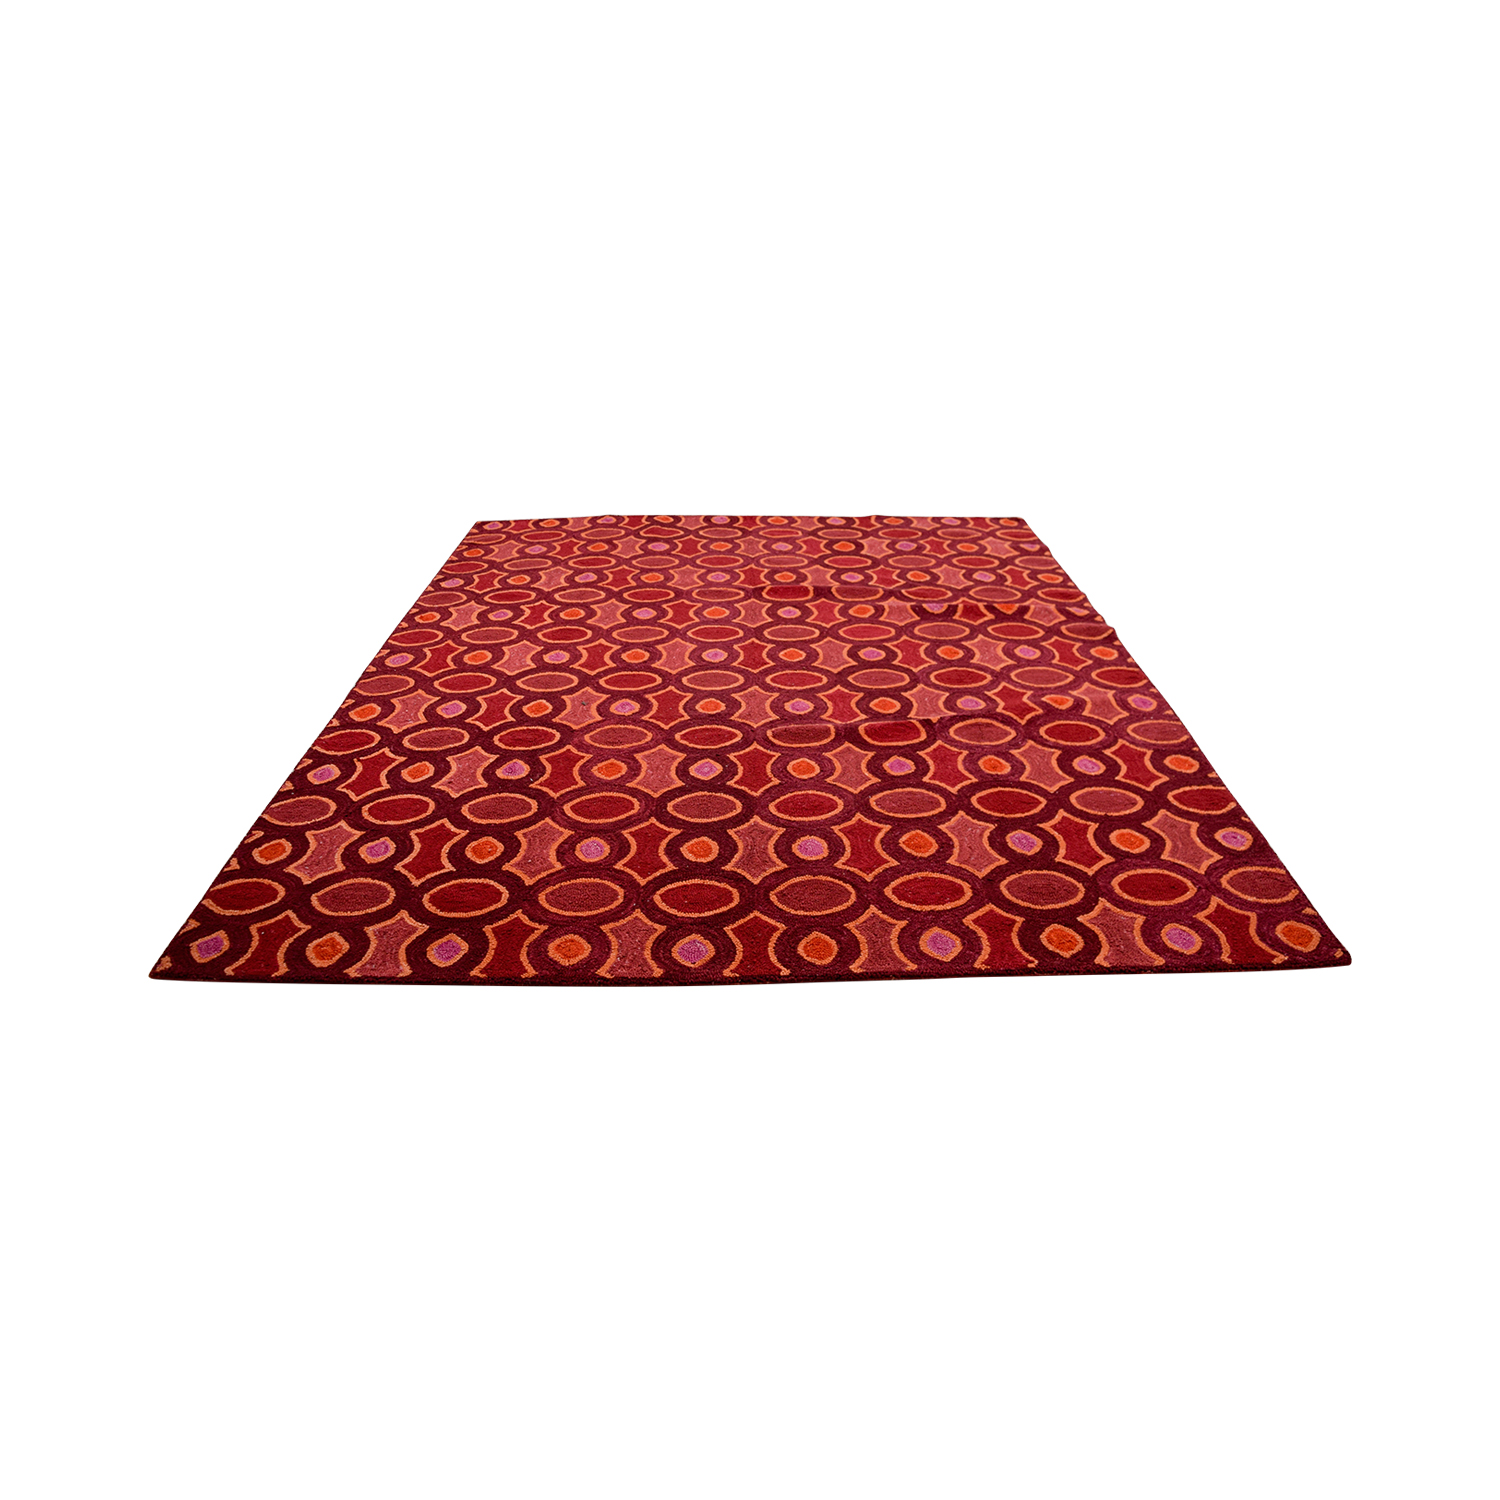 Obeetee Obeetee Hand Hooked Red Pink Orange Rug coupon